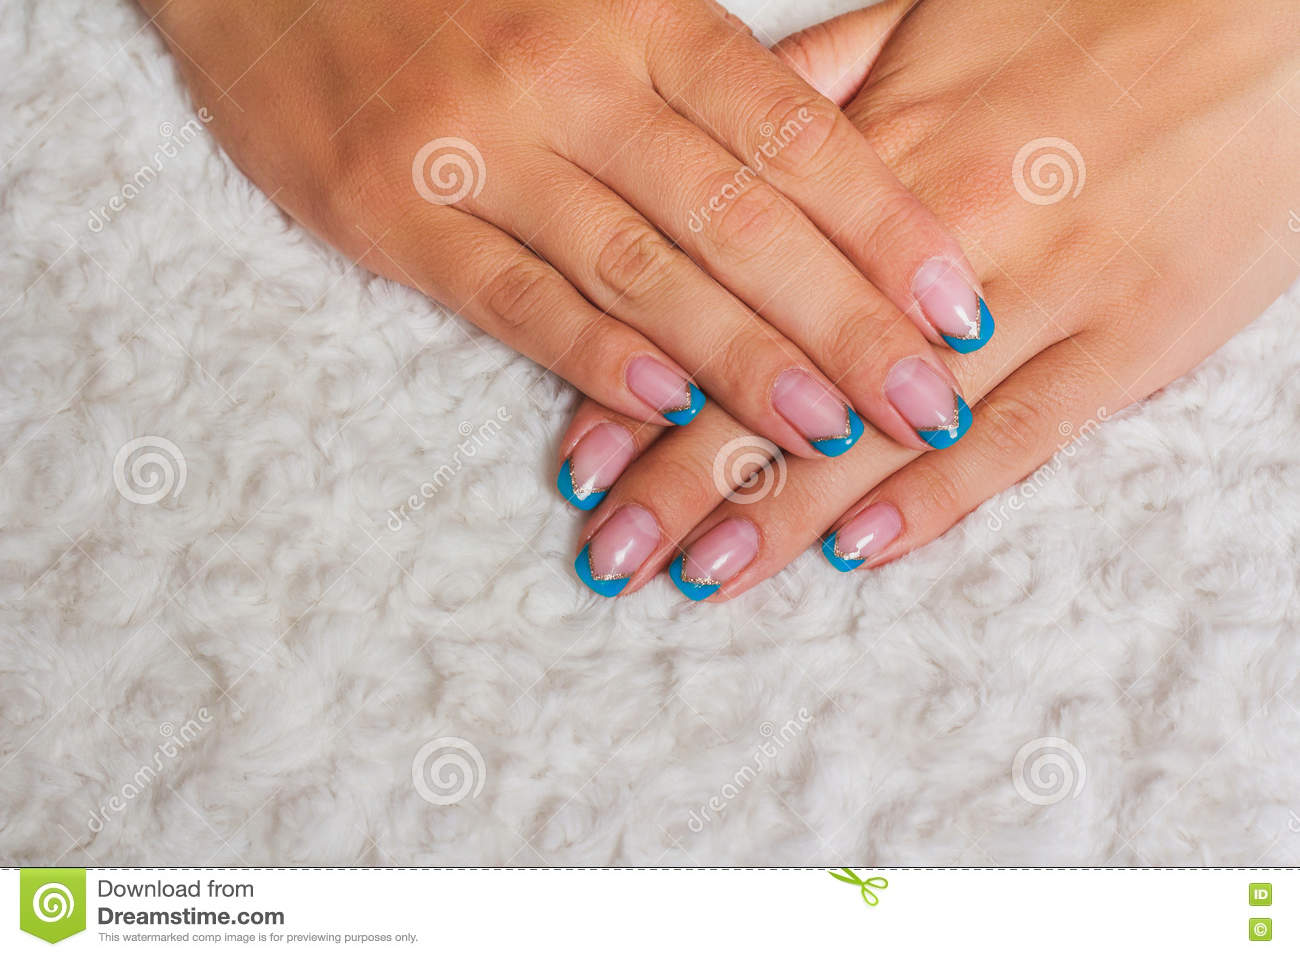 French Nail Art With Light Blue And Gold Lines Stock Photo - Image ...